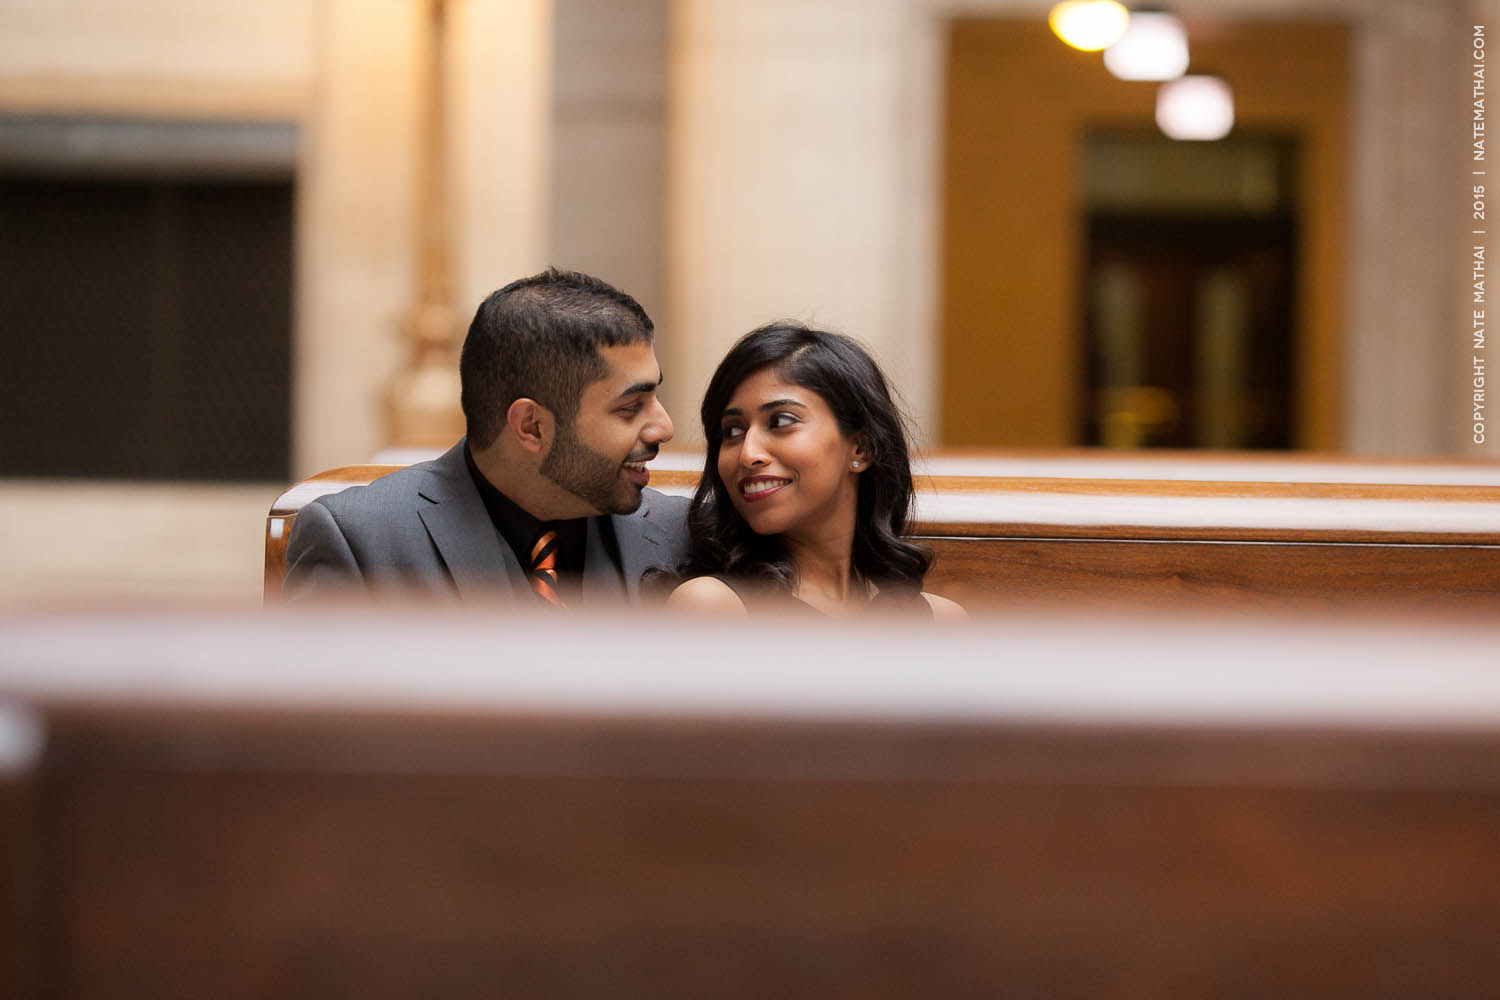 great photography for Stephina and John's Downtown Chicago Portraits by chicago wedding photographer nate mathai